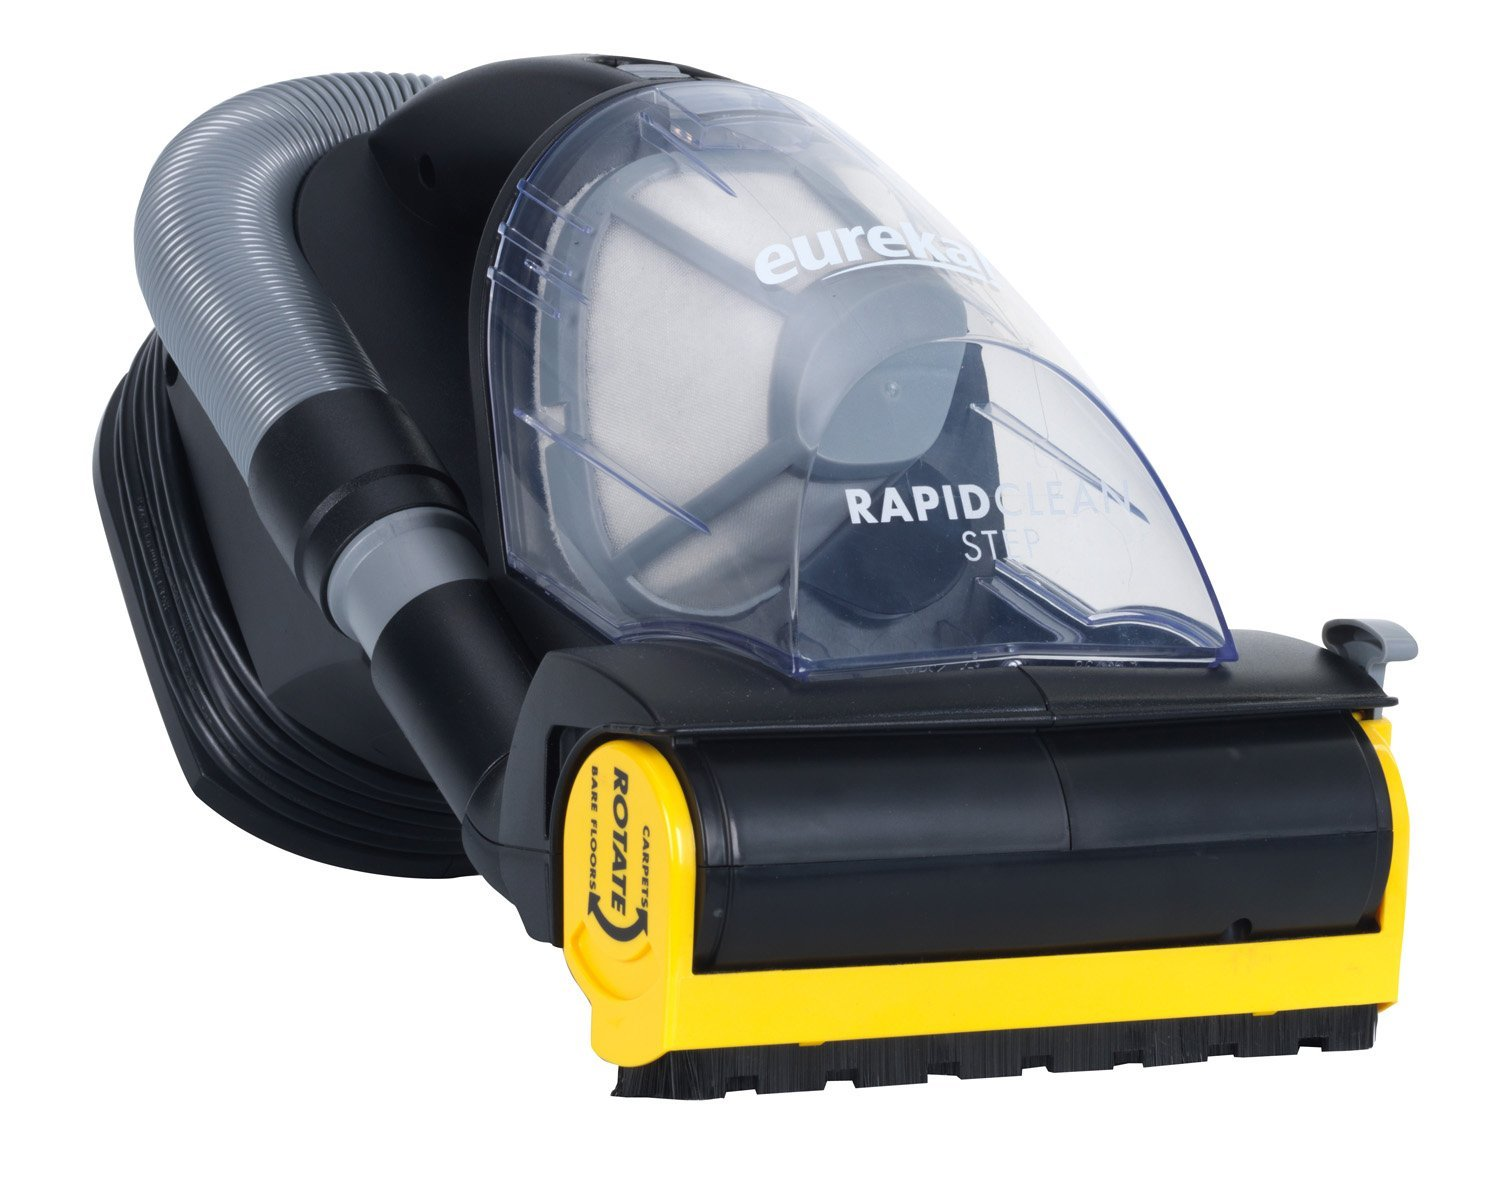 Eureka RapidClean Step Handheld Corded Vacuum Review